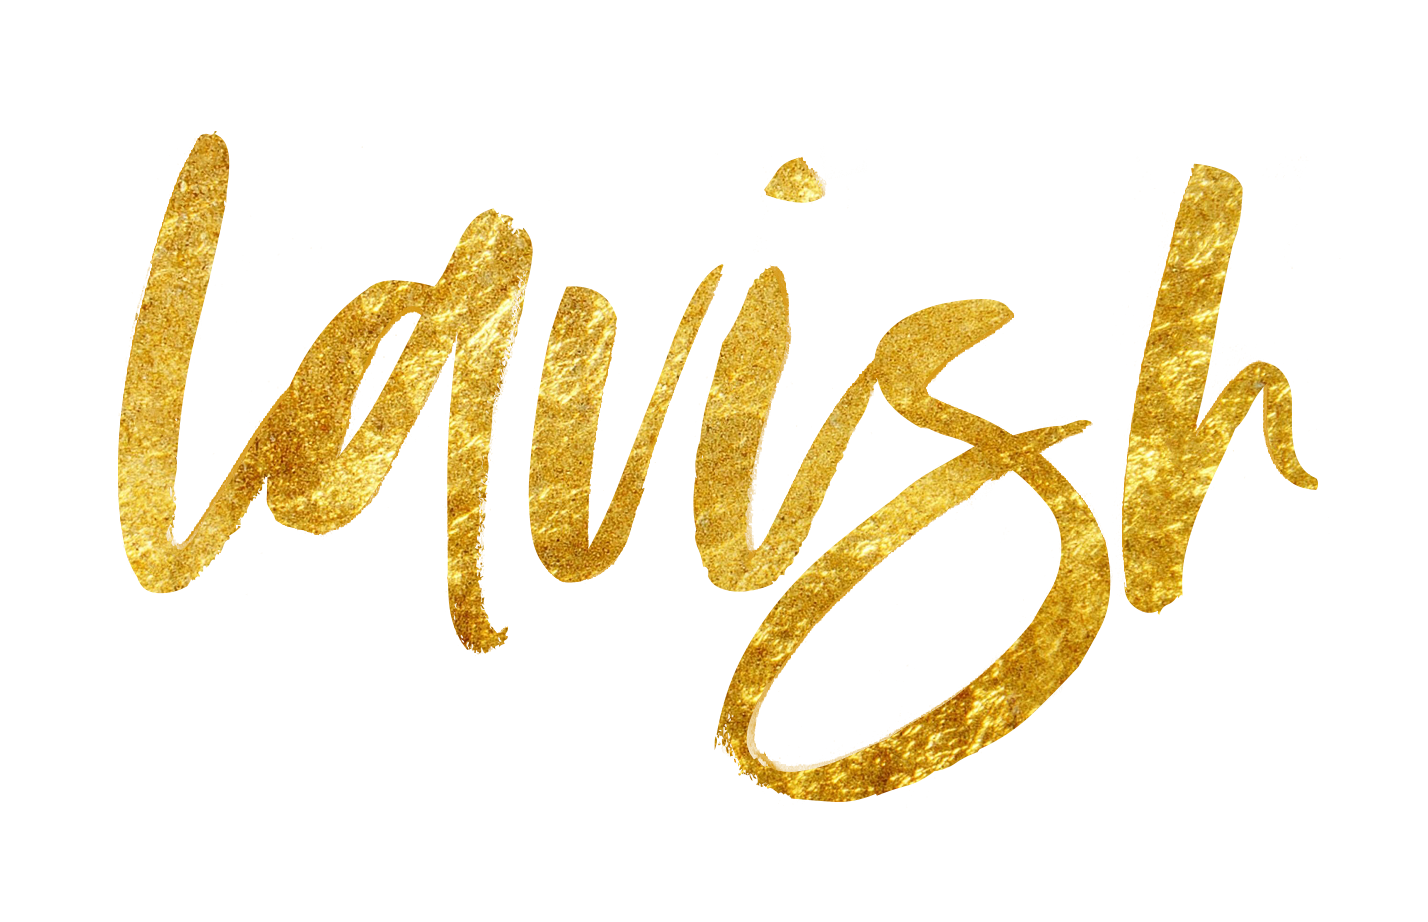 Lavish_BrushedLogo_GoldLeaf.png